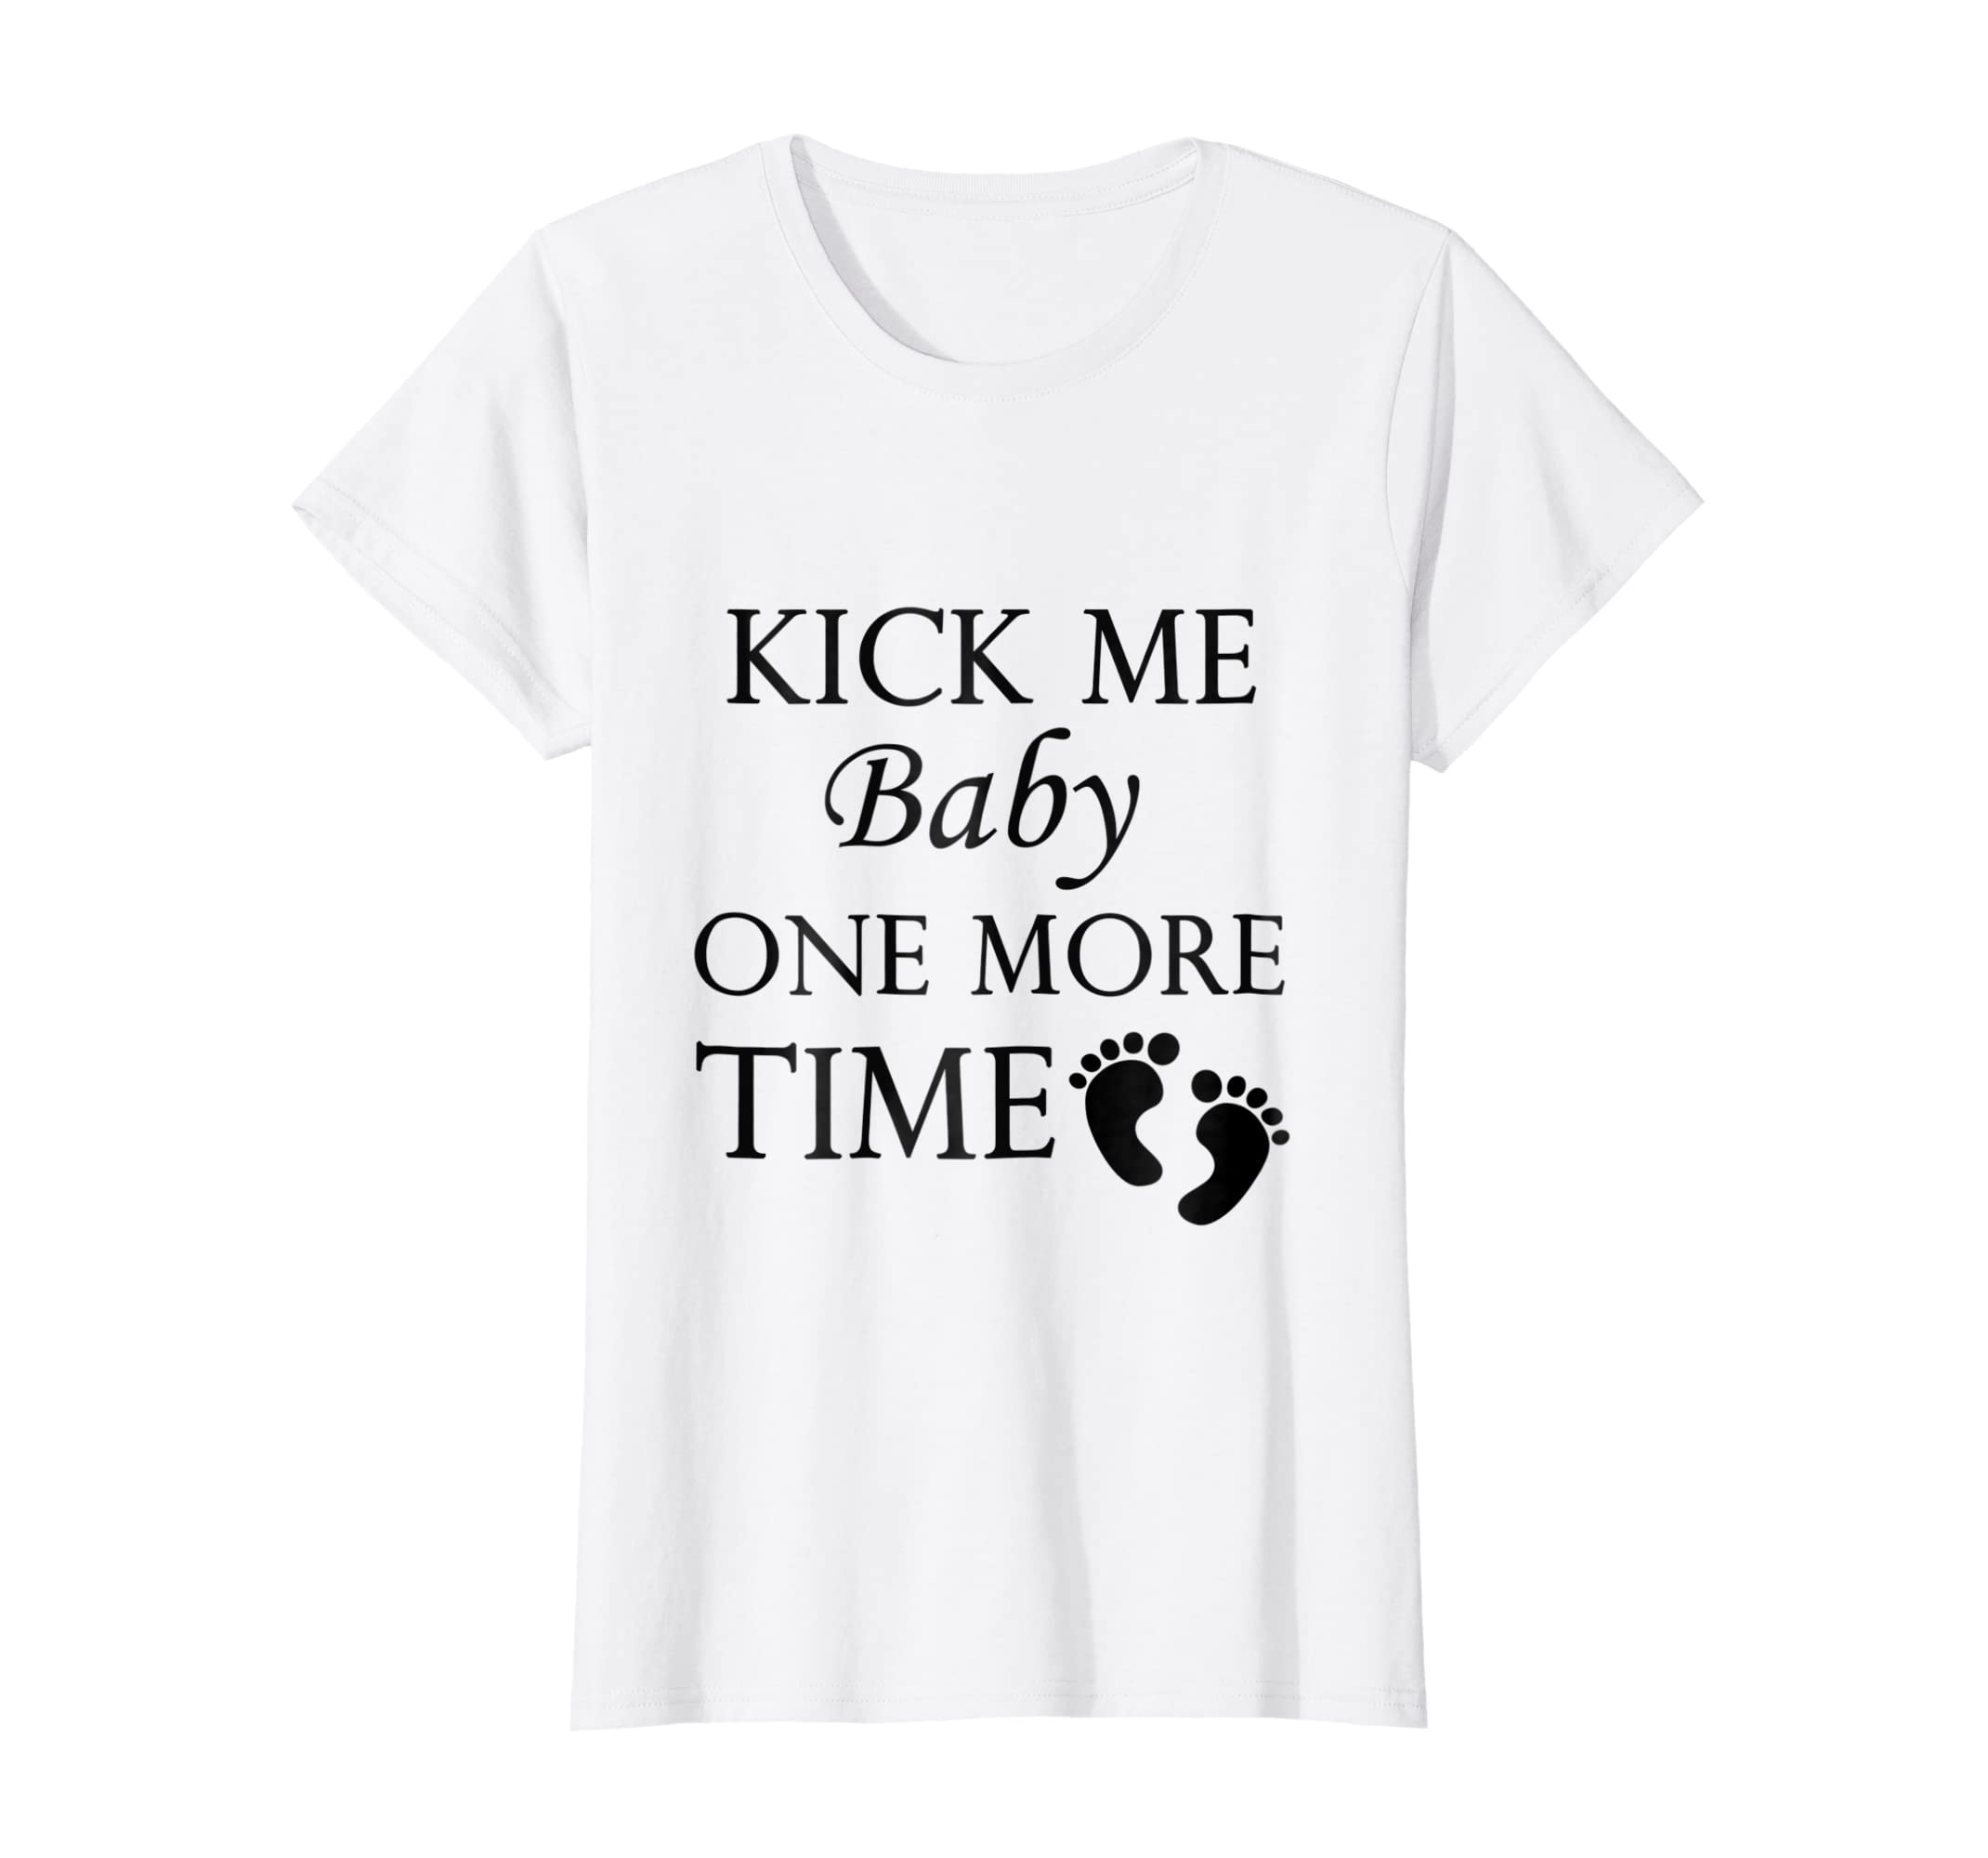 f503269c67b81 Amazon.com: Womens Kick Me Baby One More Time Pregnancy T-Shirt: Clothing